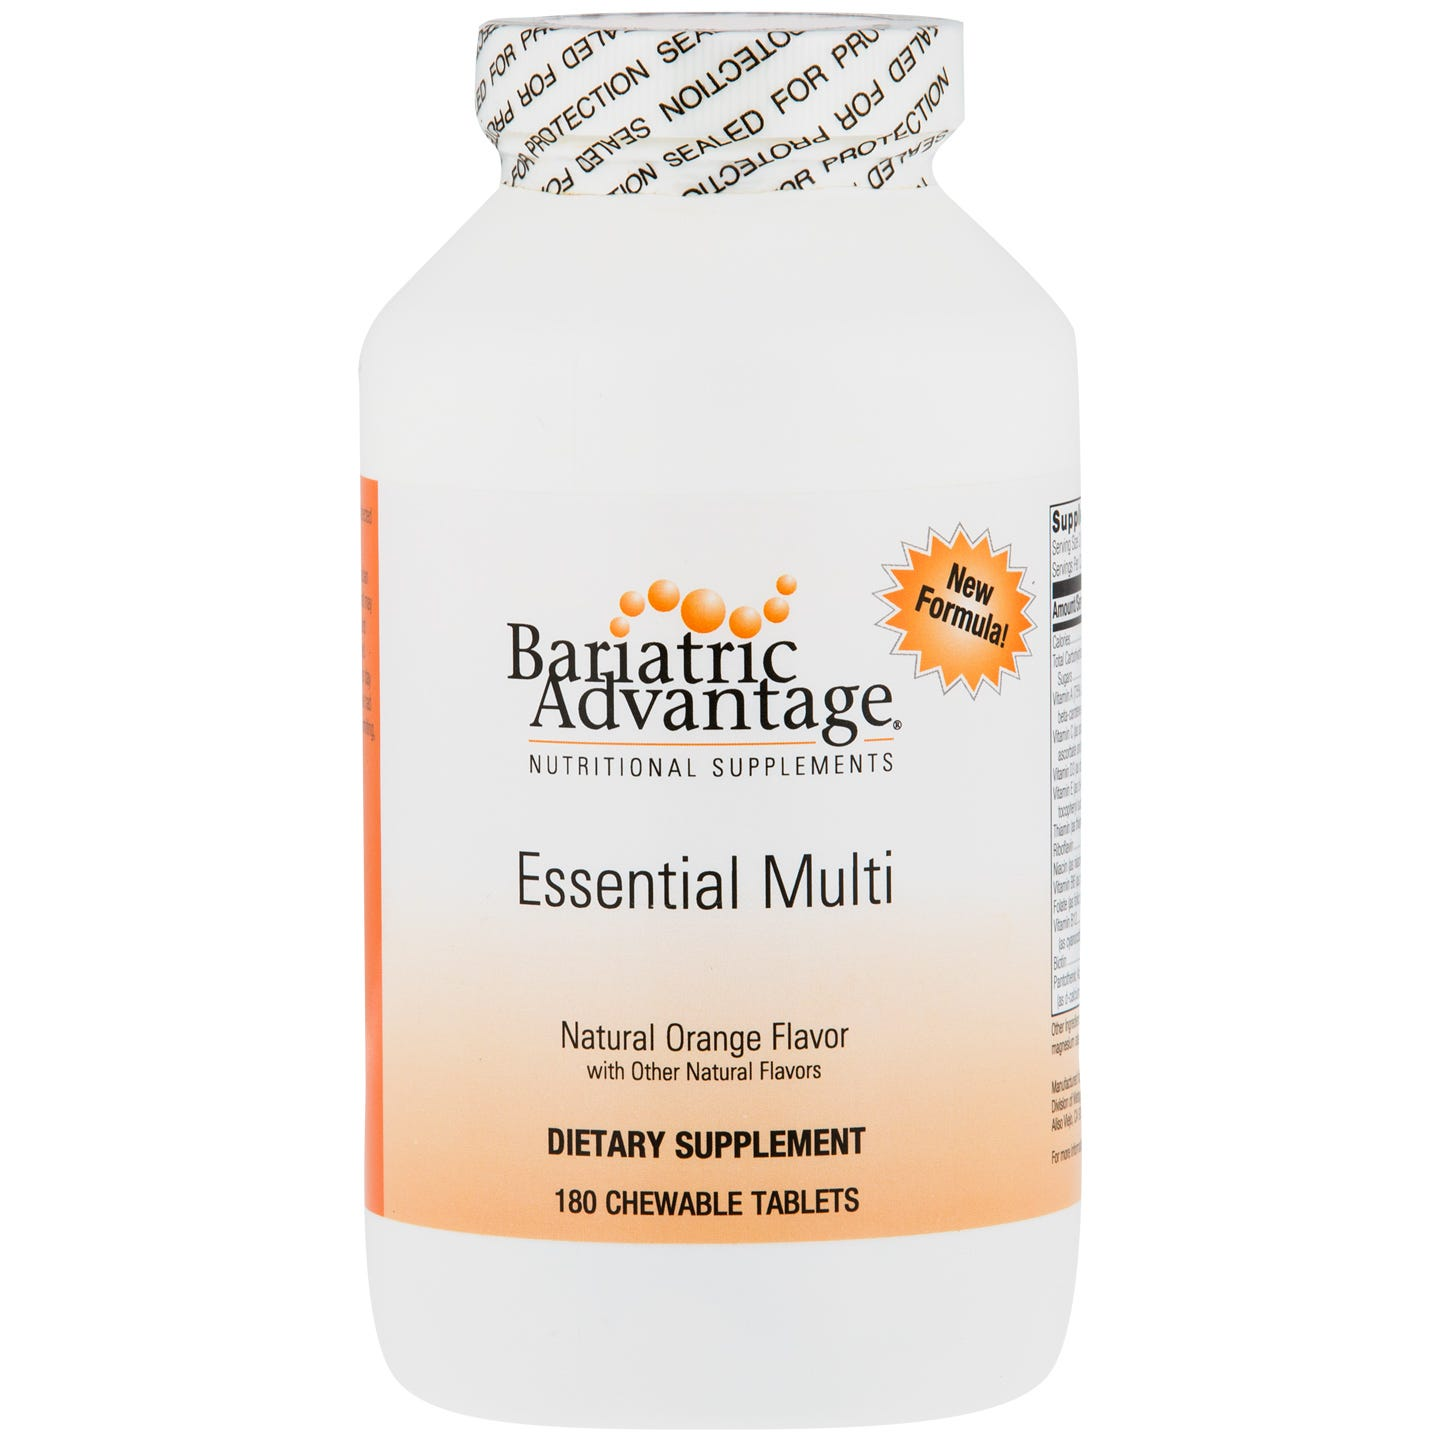 Essential Multi Chewable Orange (180 ct) - Bariatric Advantage - Rapid Diet Weight Loss Products Shop